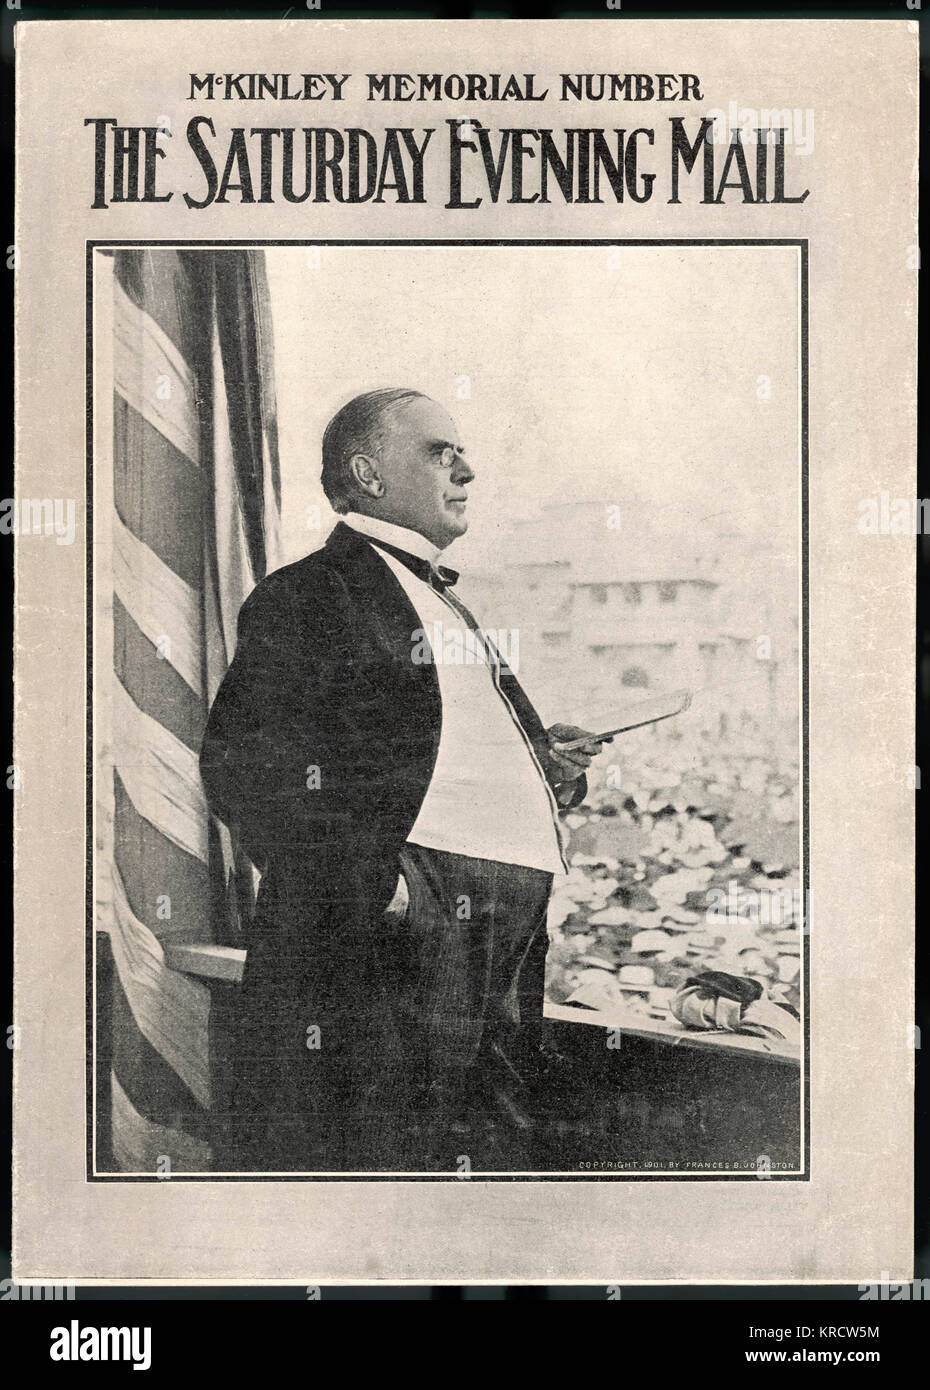 WILLIAM MCKINLEY The U.S. Presidents last public address in New York the day before his shooting. Date: Sept 5th,1901 - Stock Image